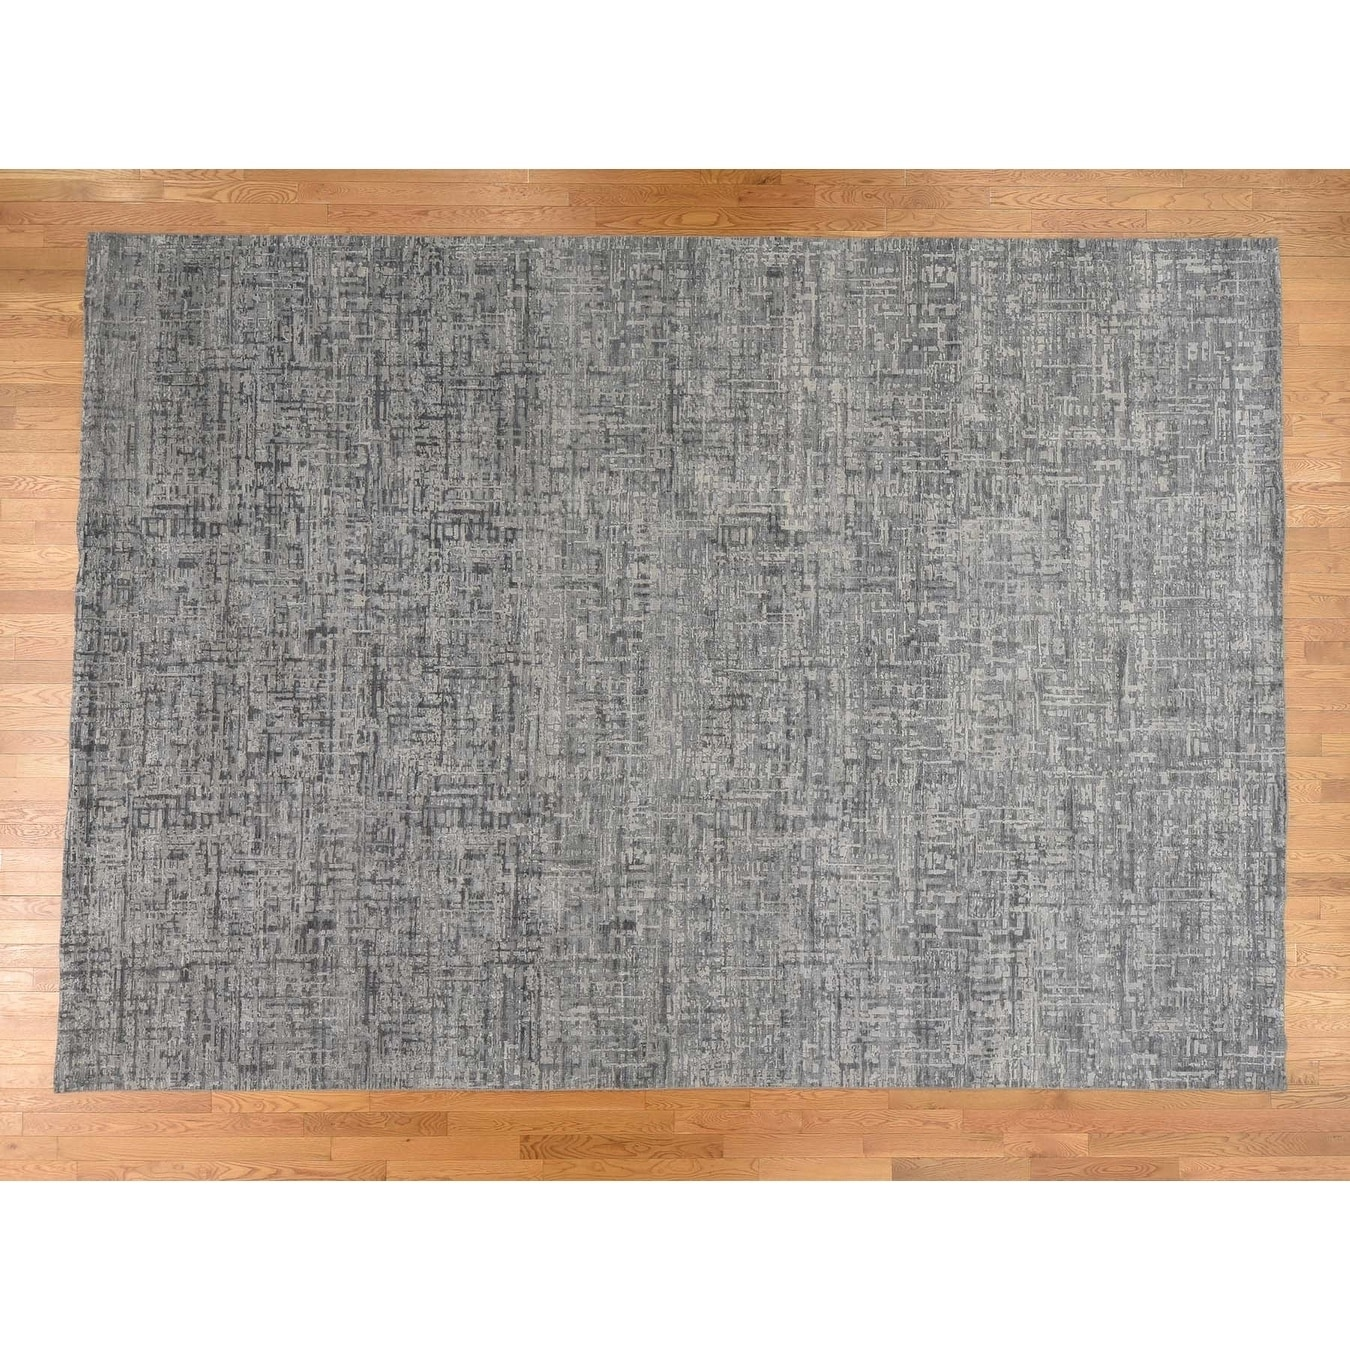 Hand Knotted Grey Modern & Contemporary with Wool & Silk Oriental Rug - 101 x 143